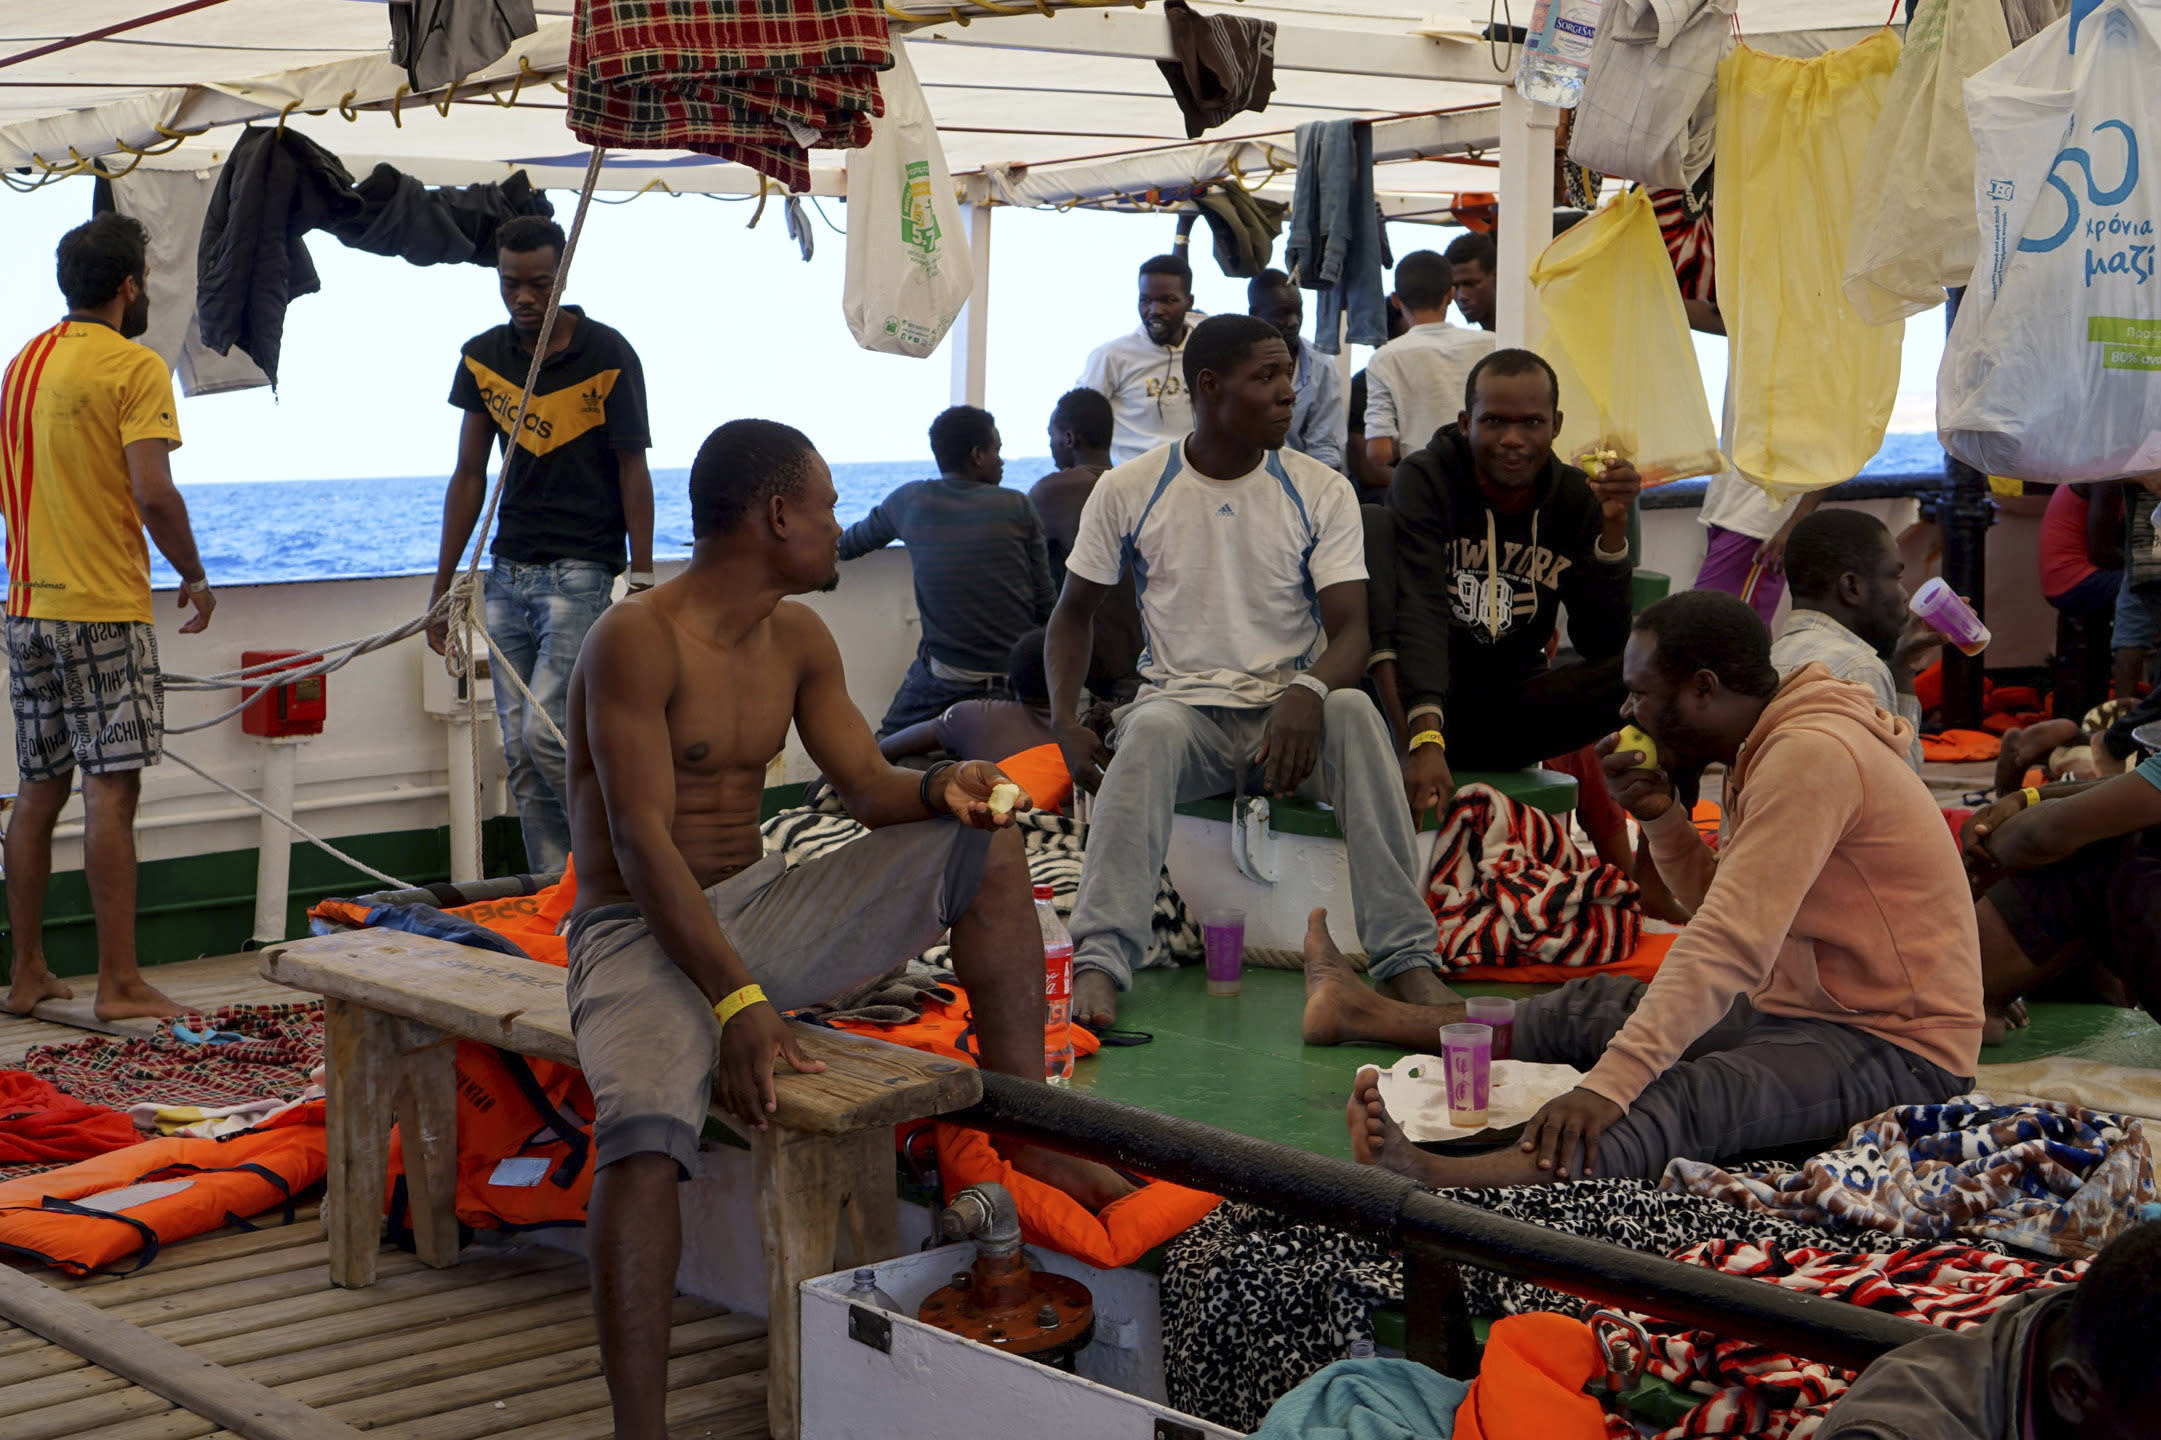 Humanitarian group says stranded migrants are jumping into sea in desperation